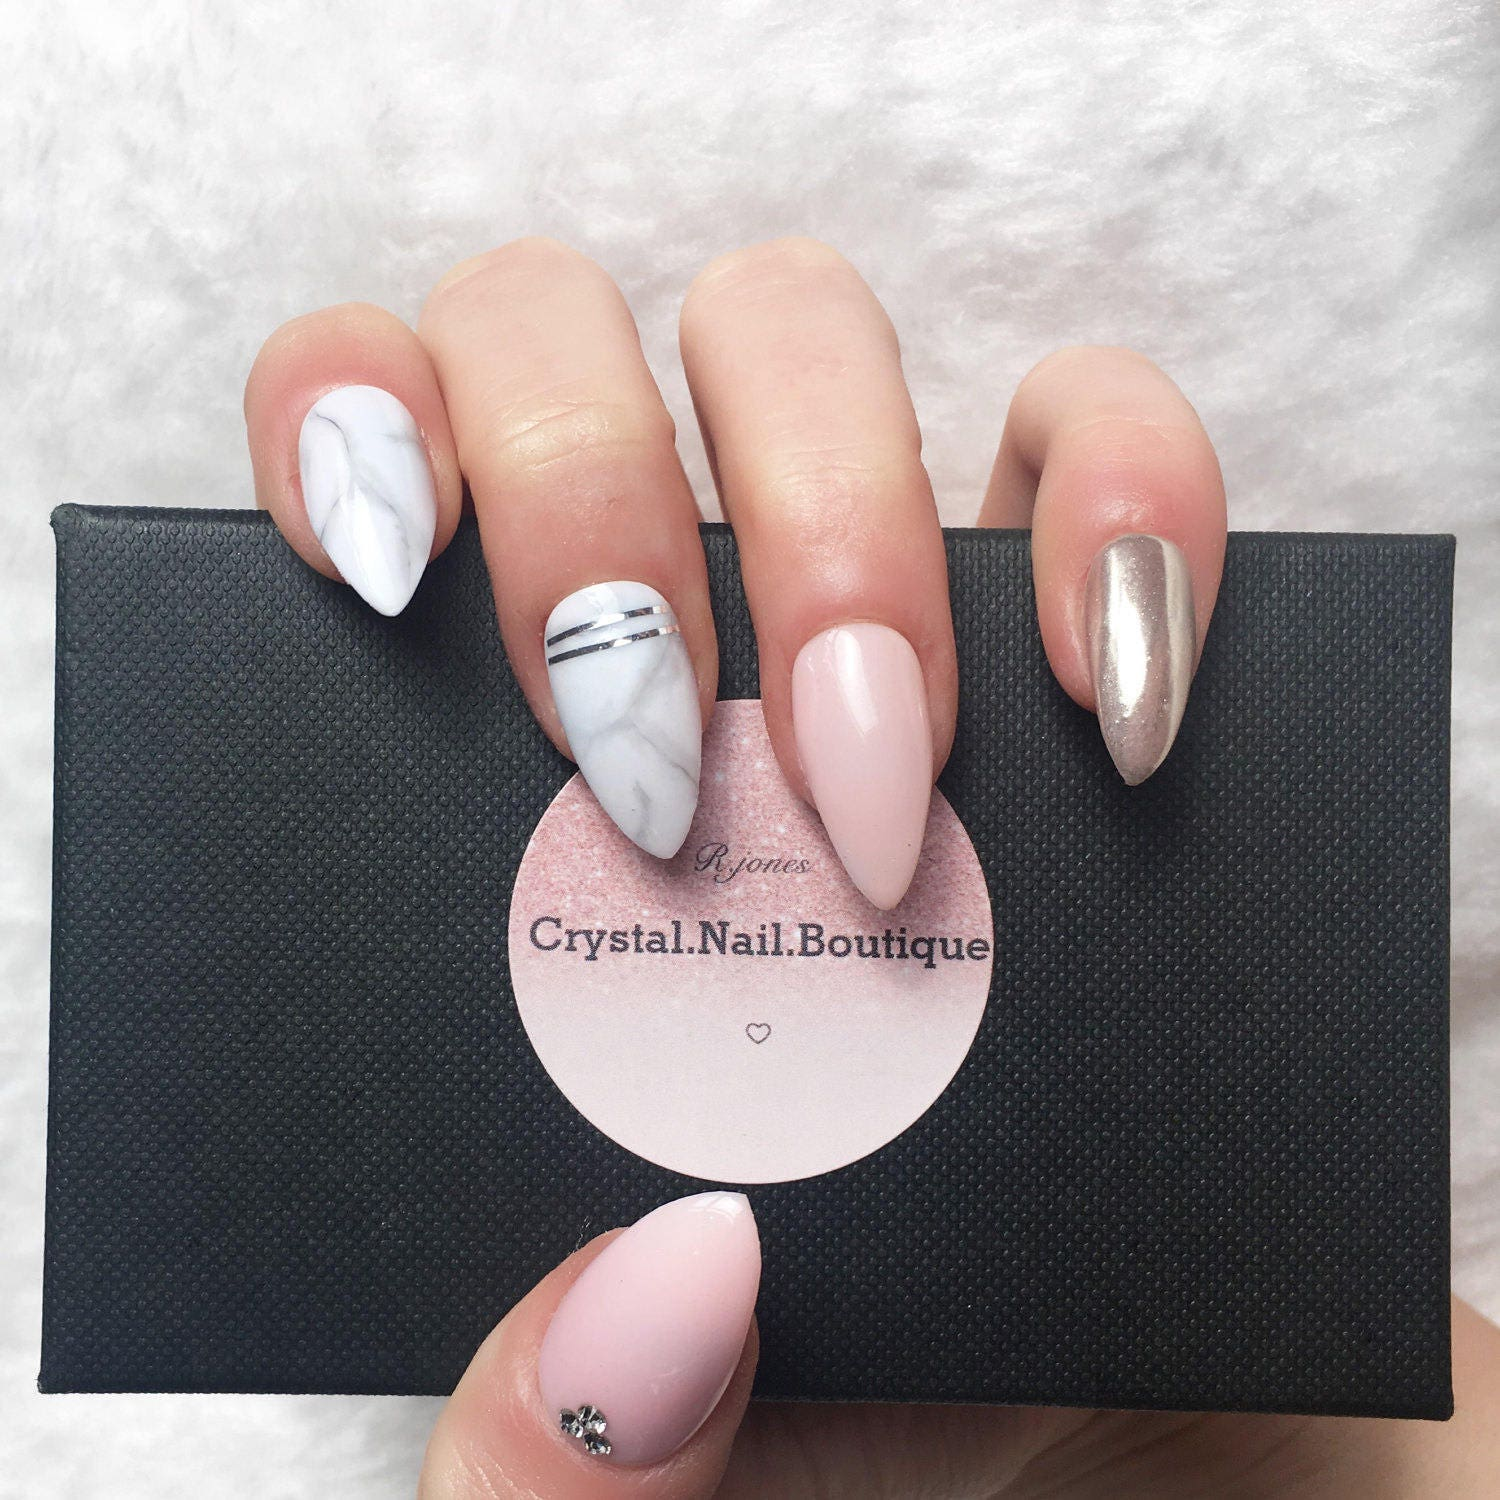 Press on nails Light pink Marble chrome nails false nails